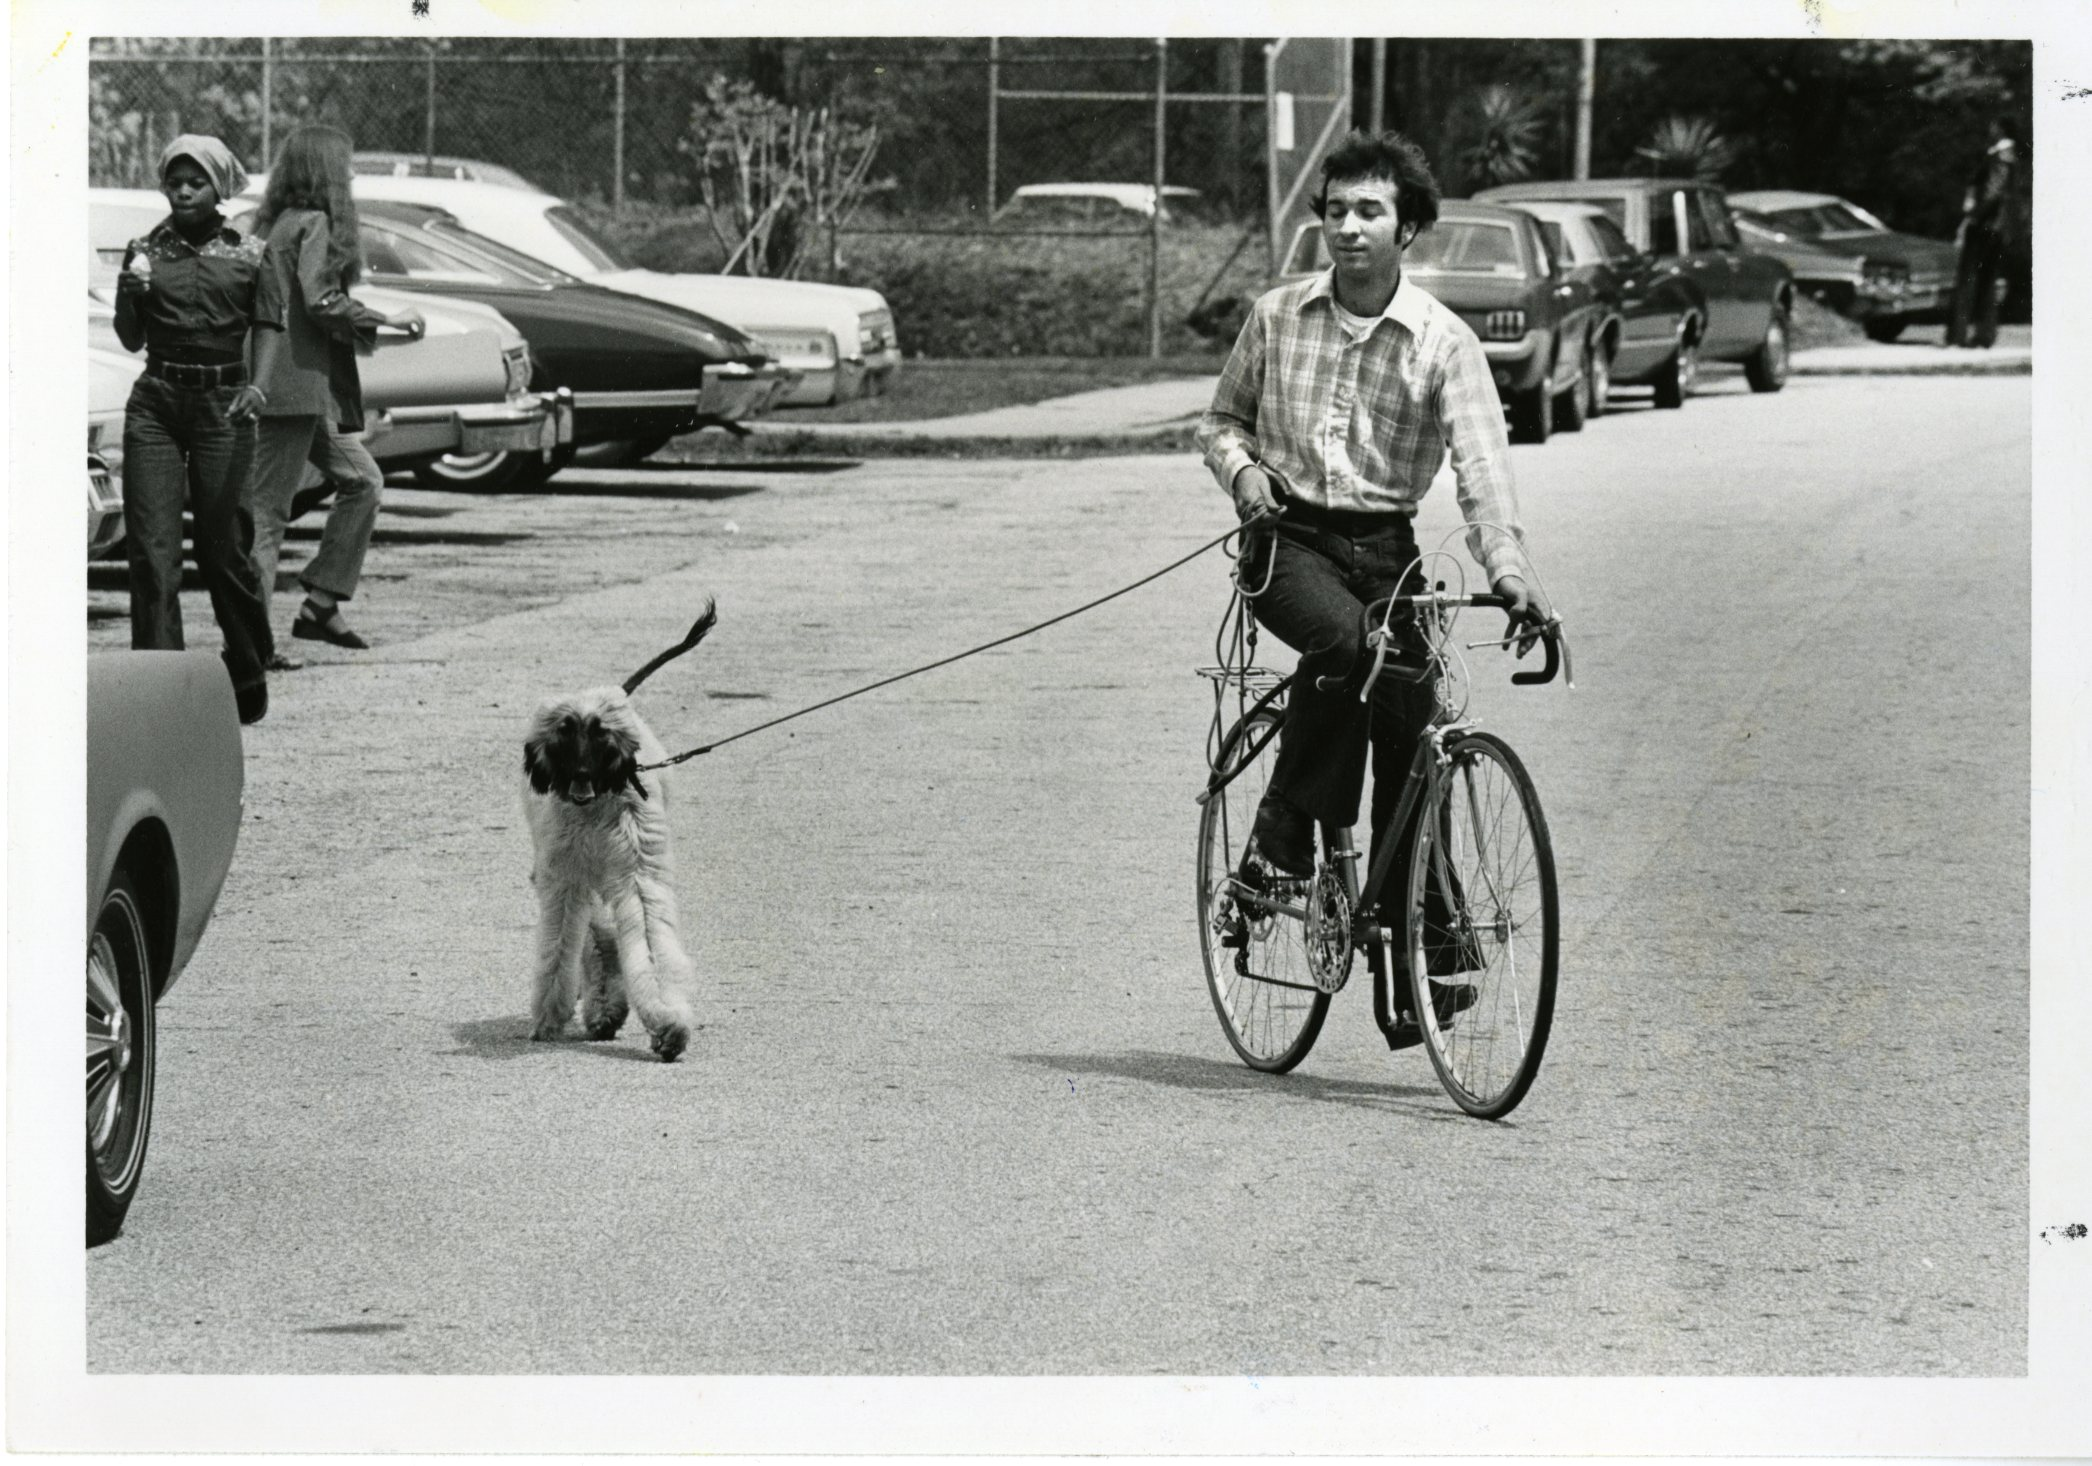 Archive shot of a student on a bike with a dog